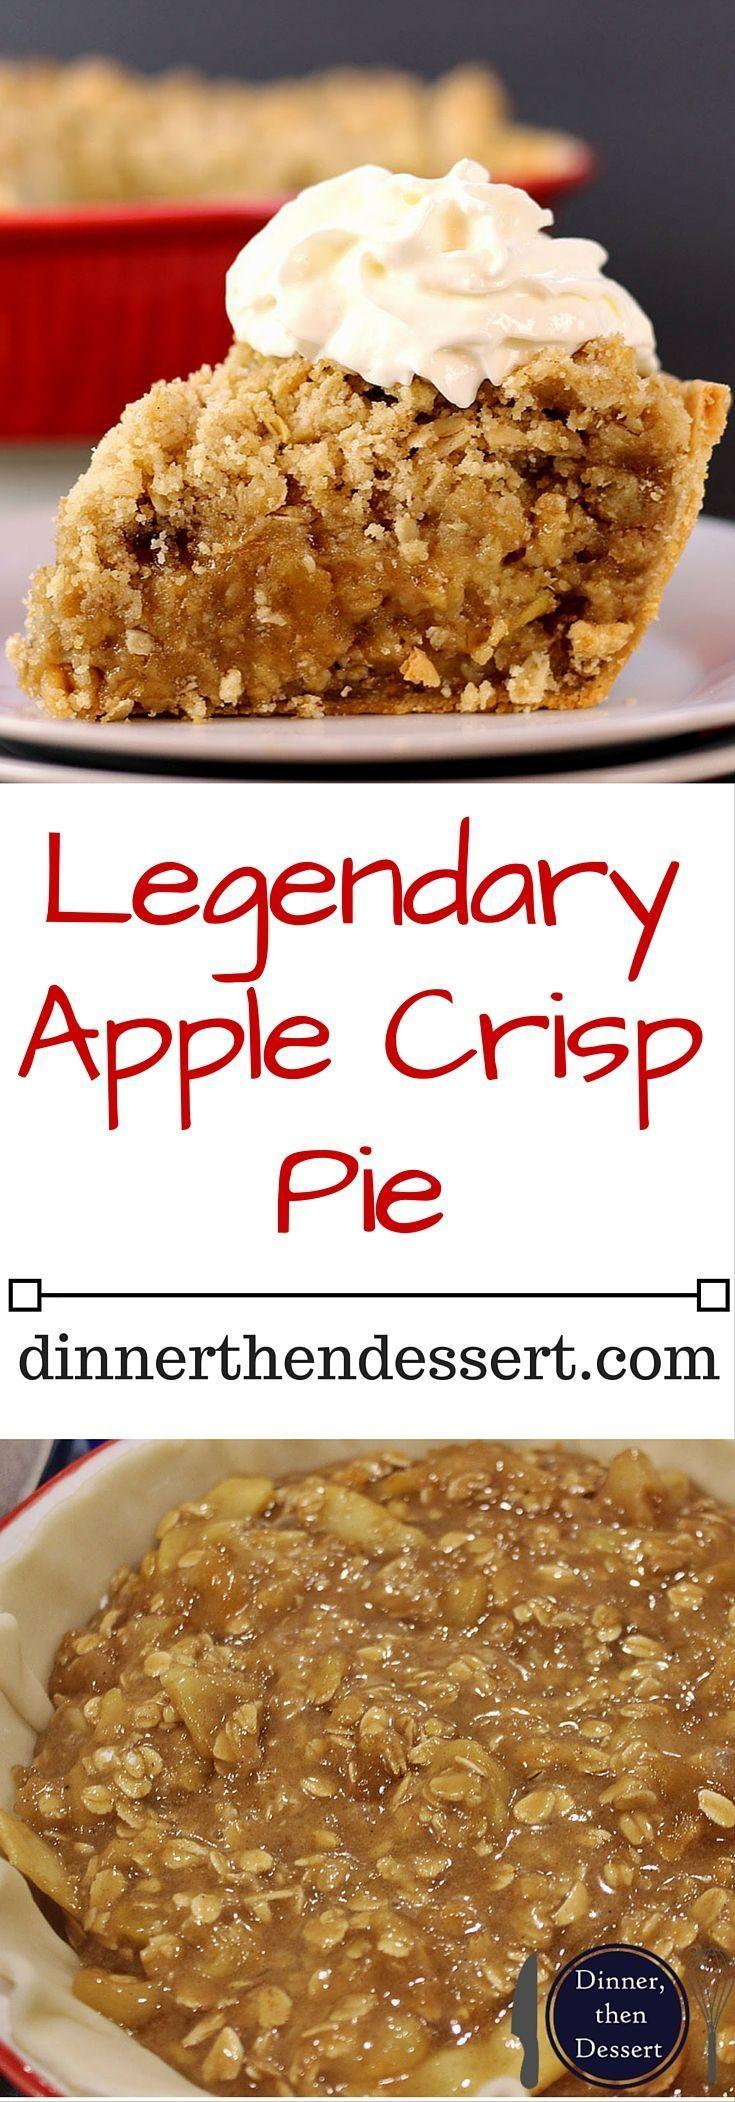 pie you will ever have. Instead of a classic apple pie or apple crisp ...